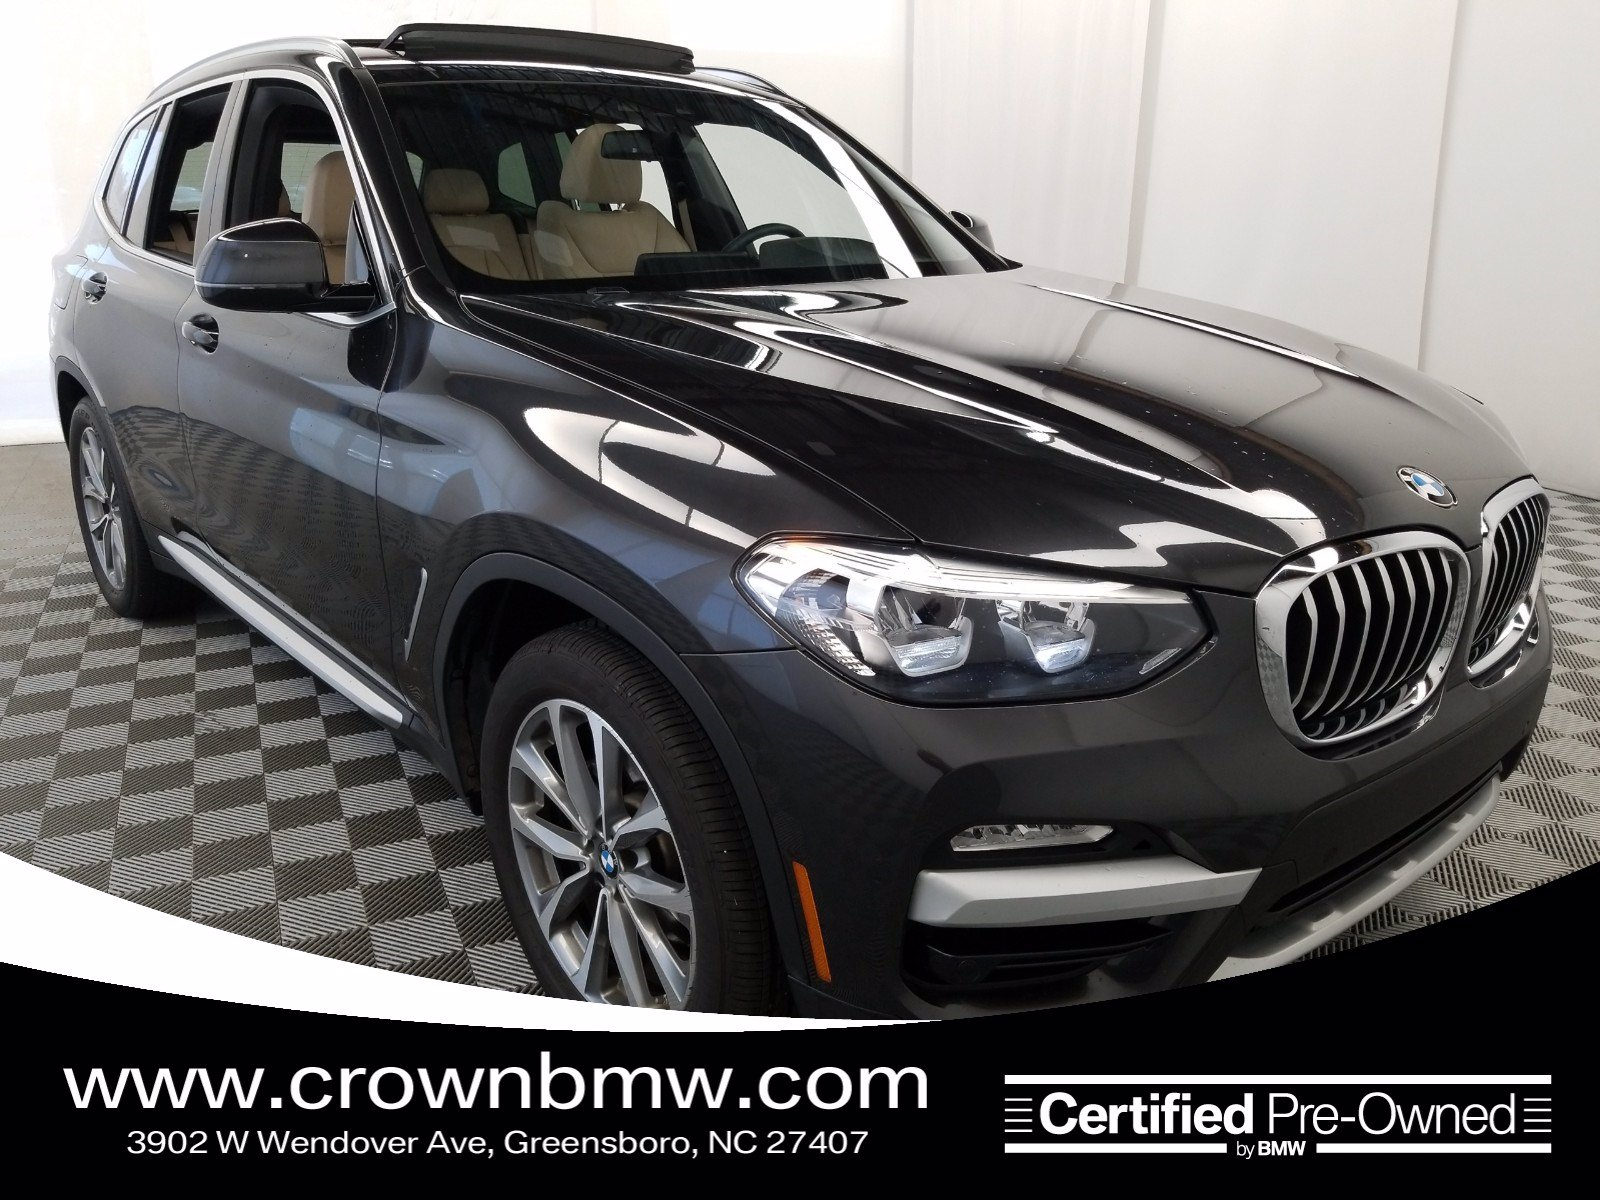 Luxury Certified Pre Owned Bmw In Greensboro Nc Certified Used Bmw Cars For Sale In Durham High Point Greensboro Burlington Winston Salem Nc Area